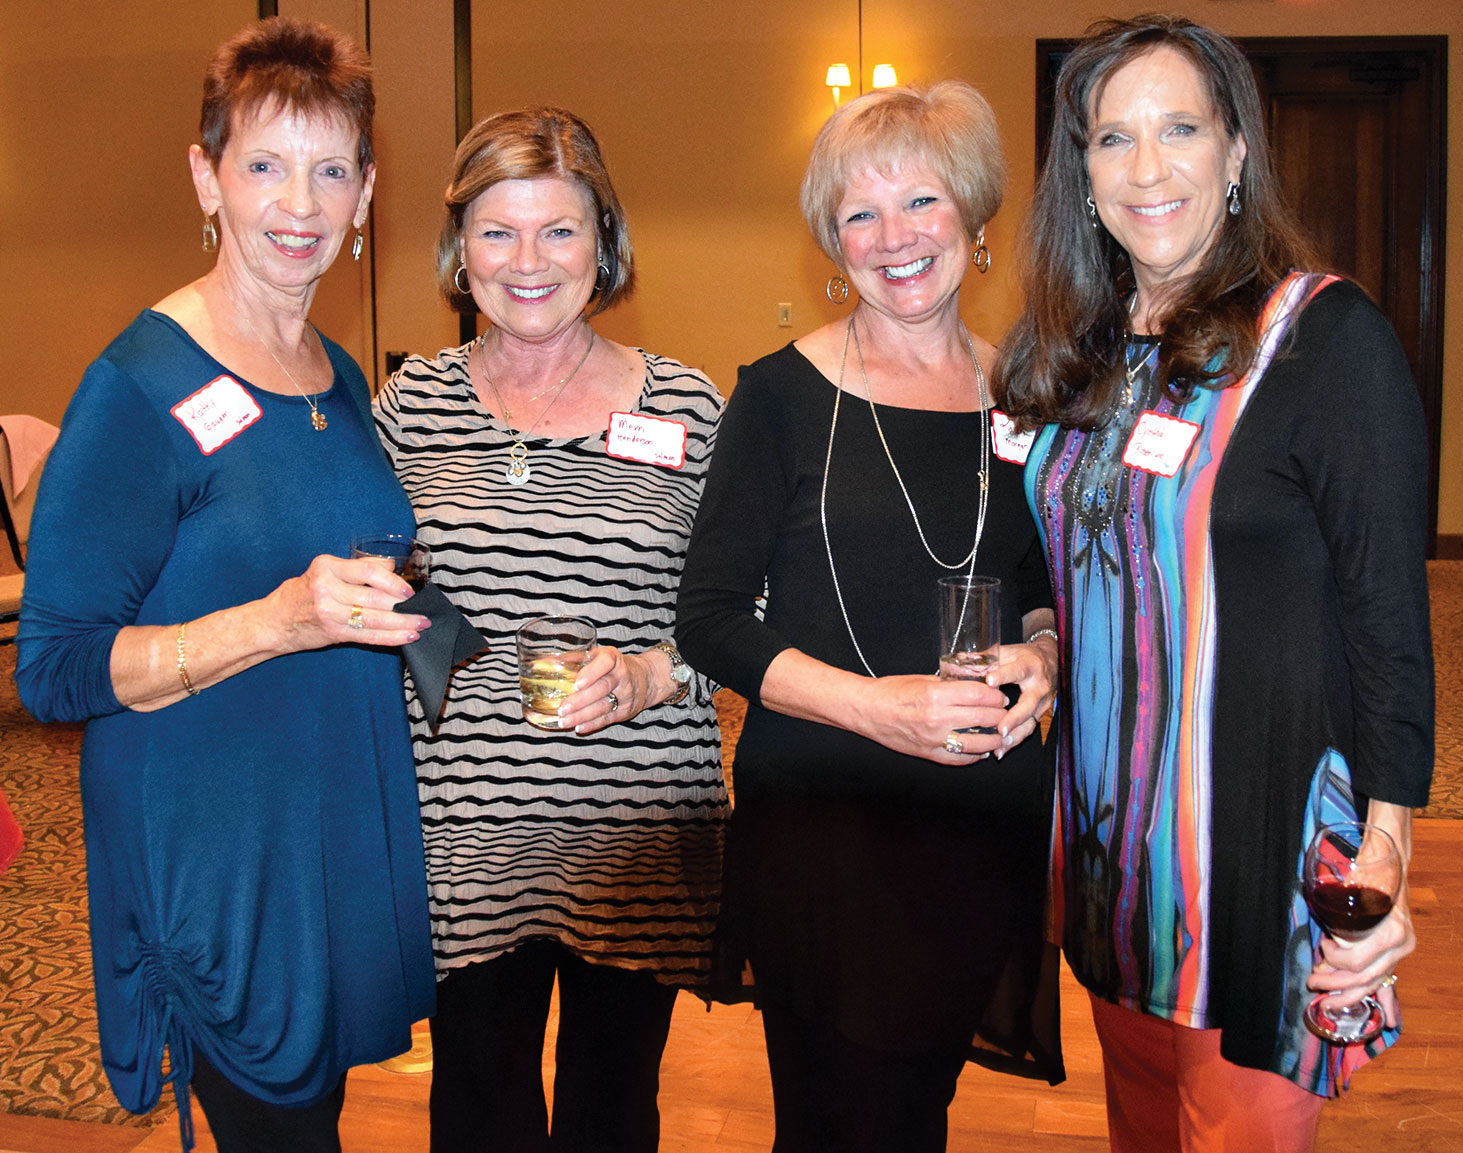 Enjoying the February 9 Minnesota Club dinner at the Madera Clubhouse are Kathy Gauger, Merri Henderson, Karen Morgan and Cynthia Rosenlund.